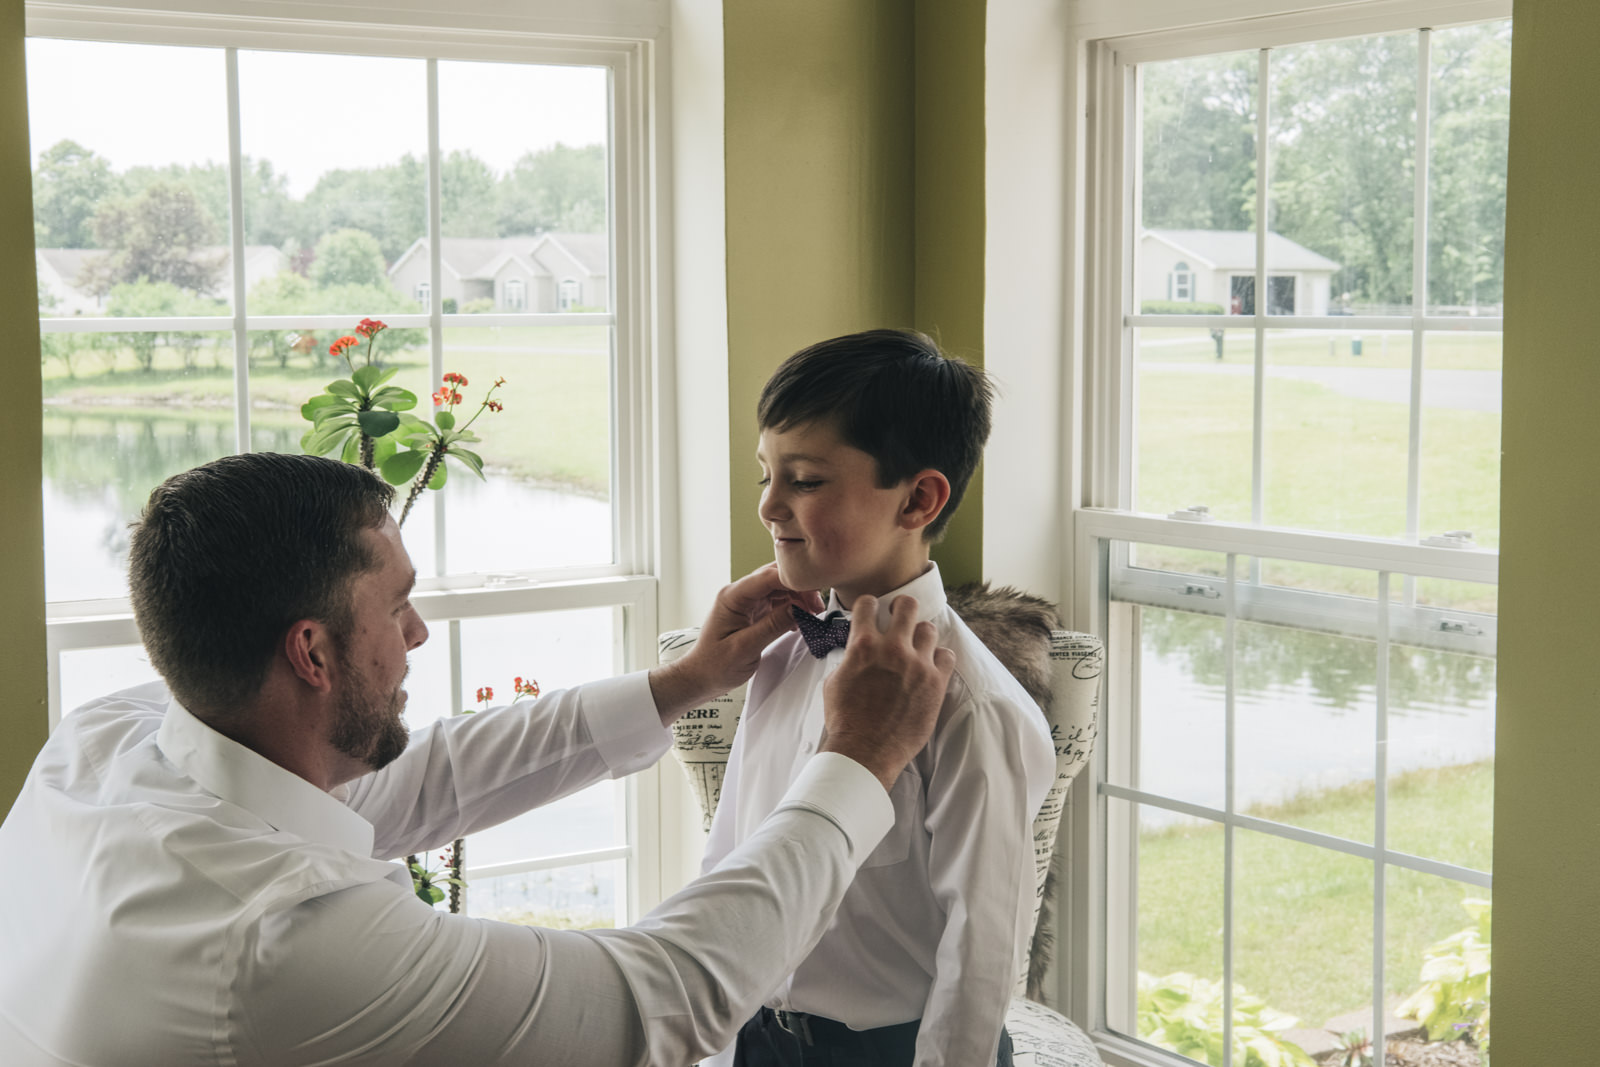 Groom-to-be getting son ready on wedding day.